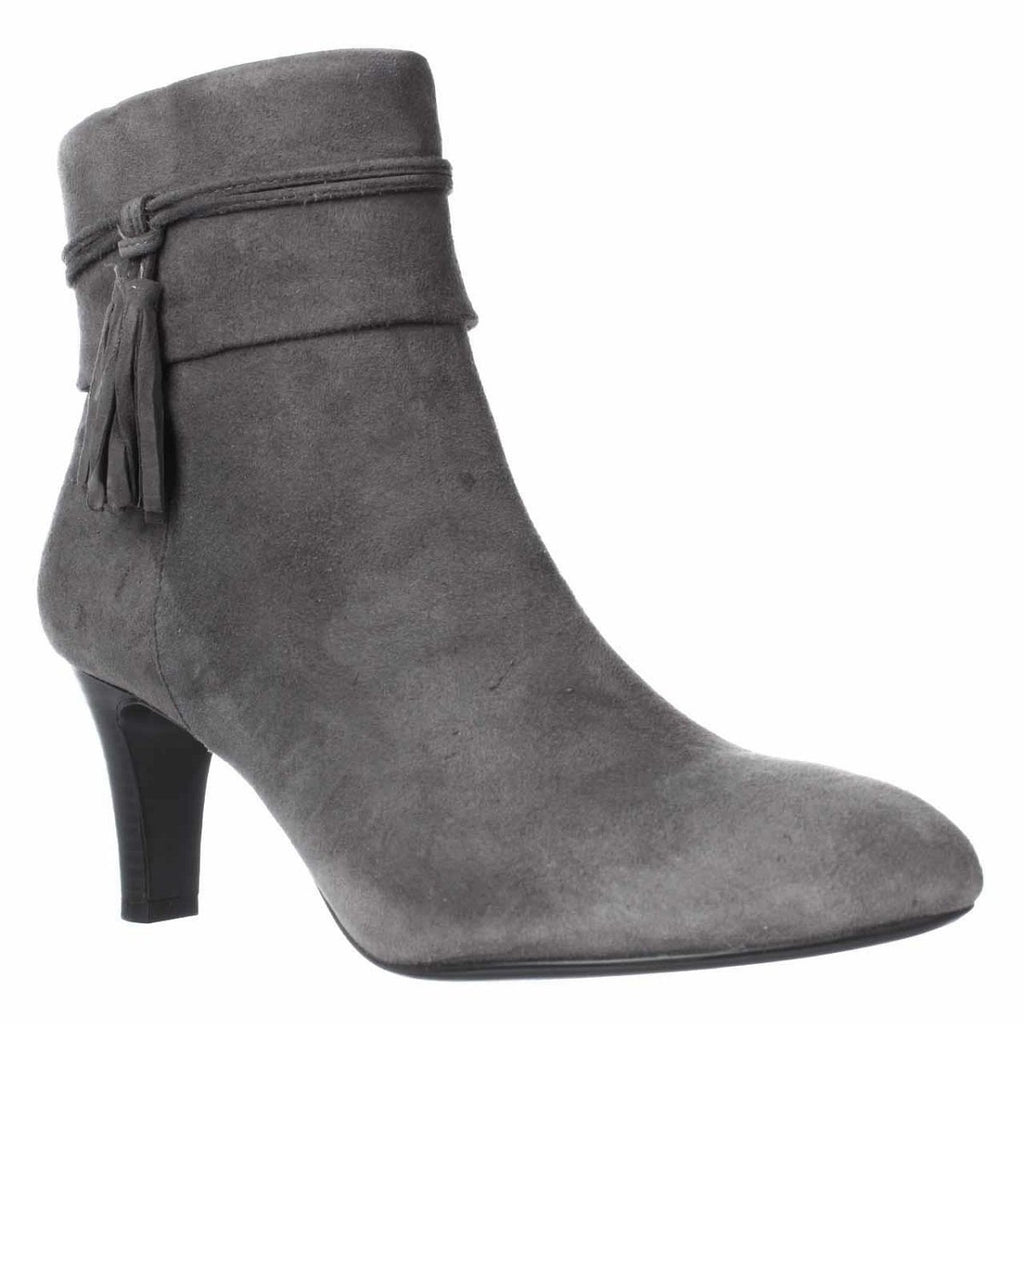 Bandolino Willaria Tassled Booties